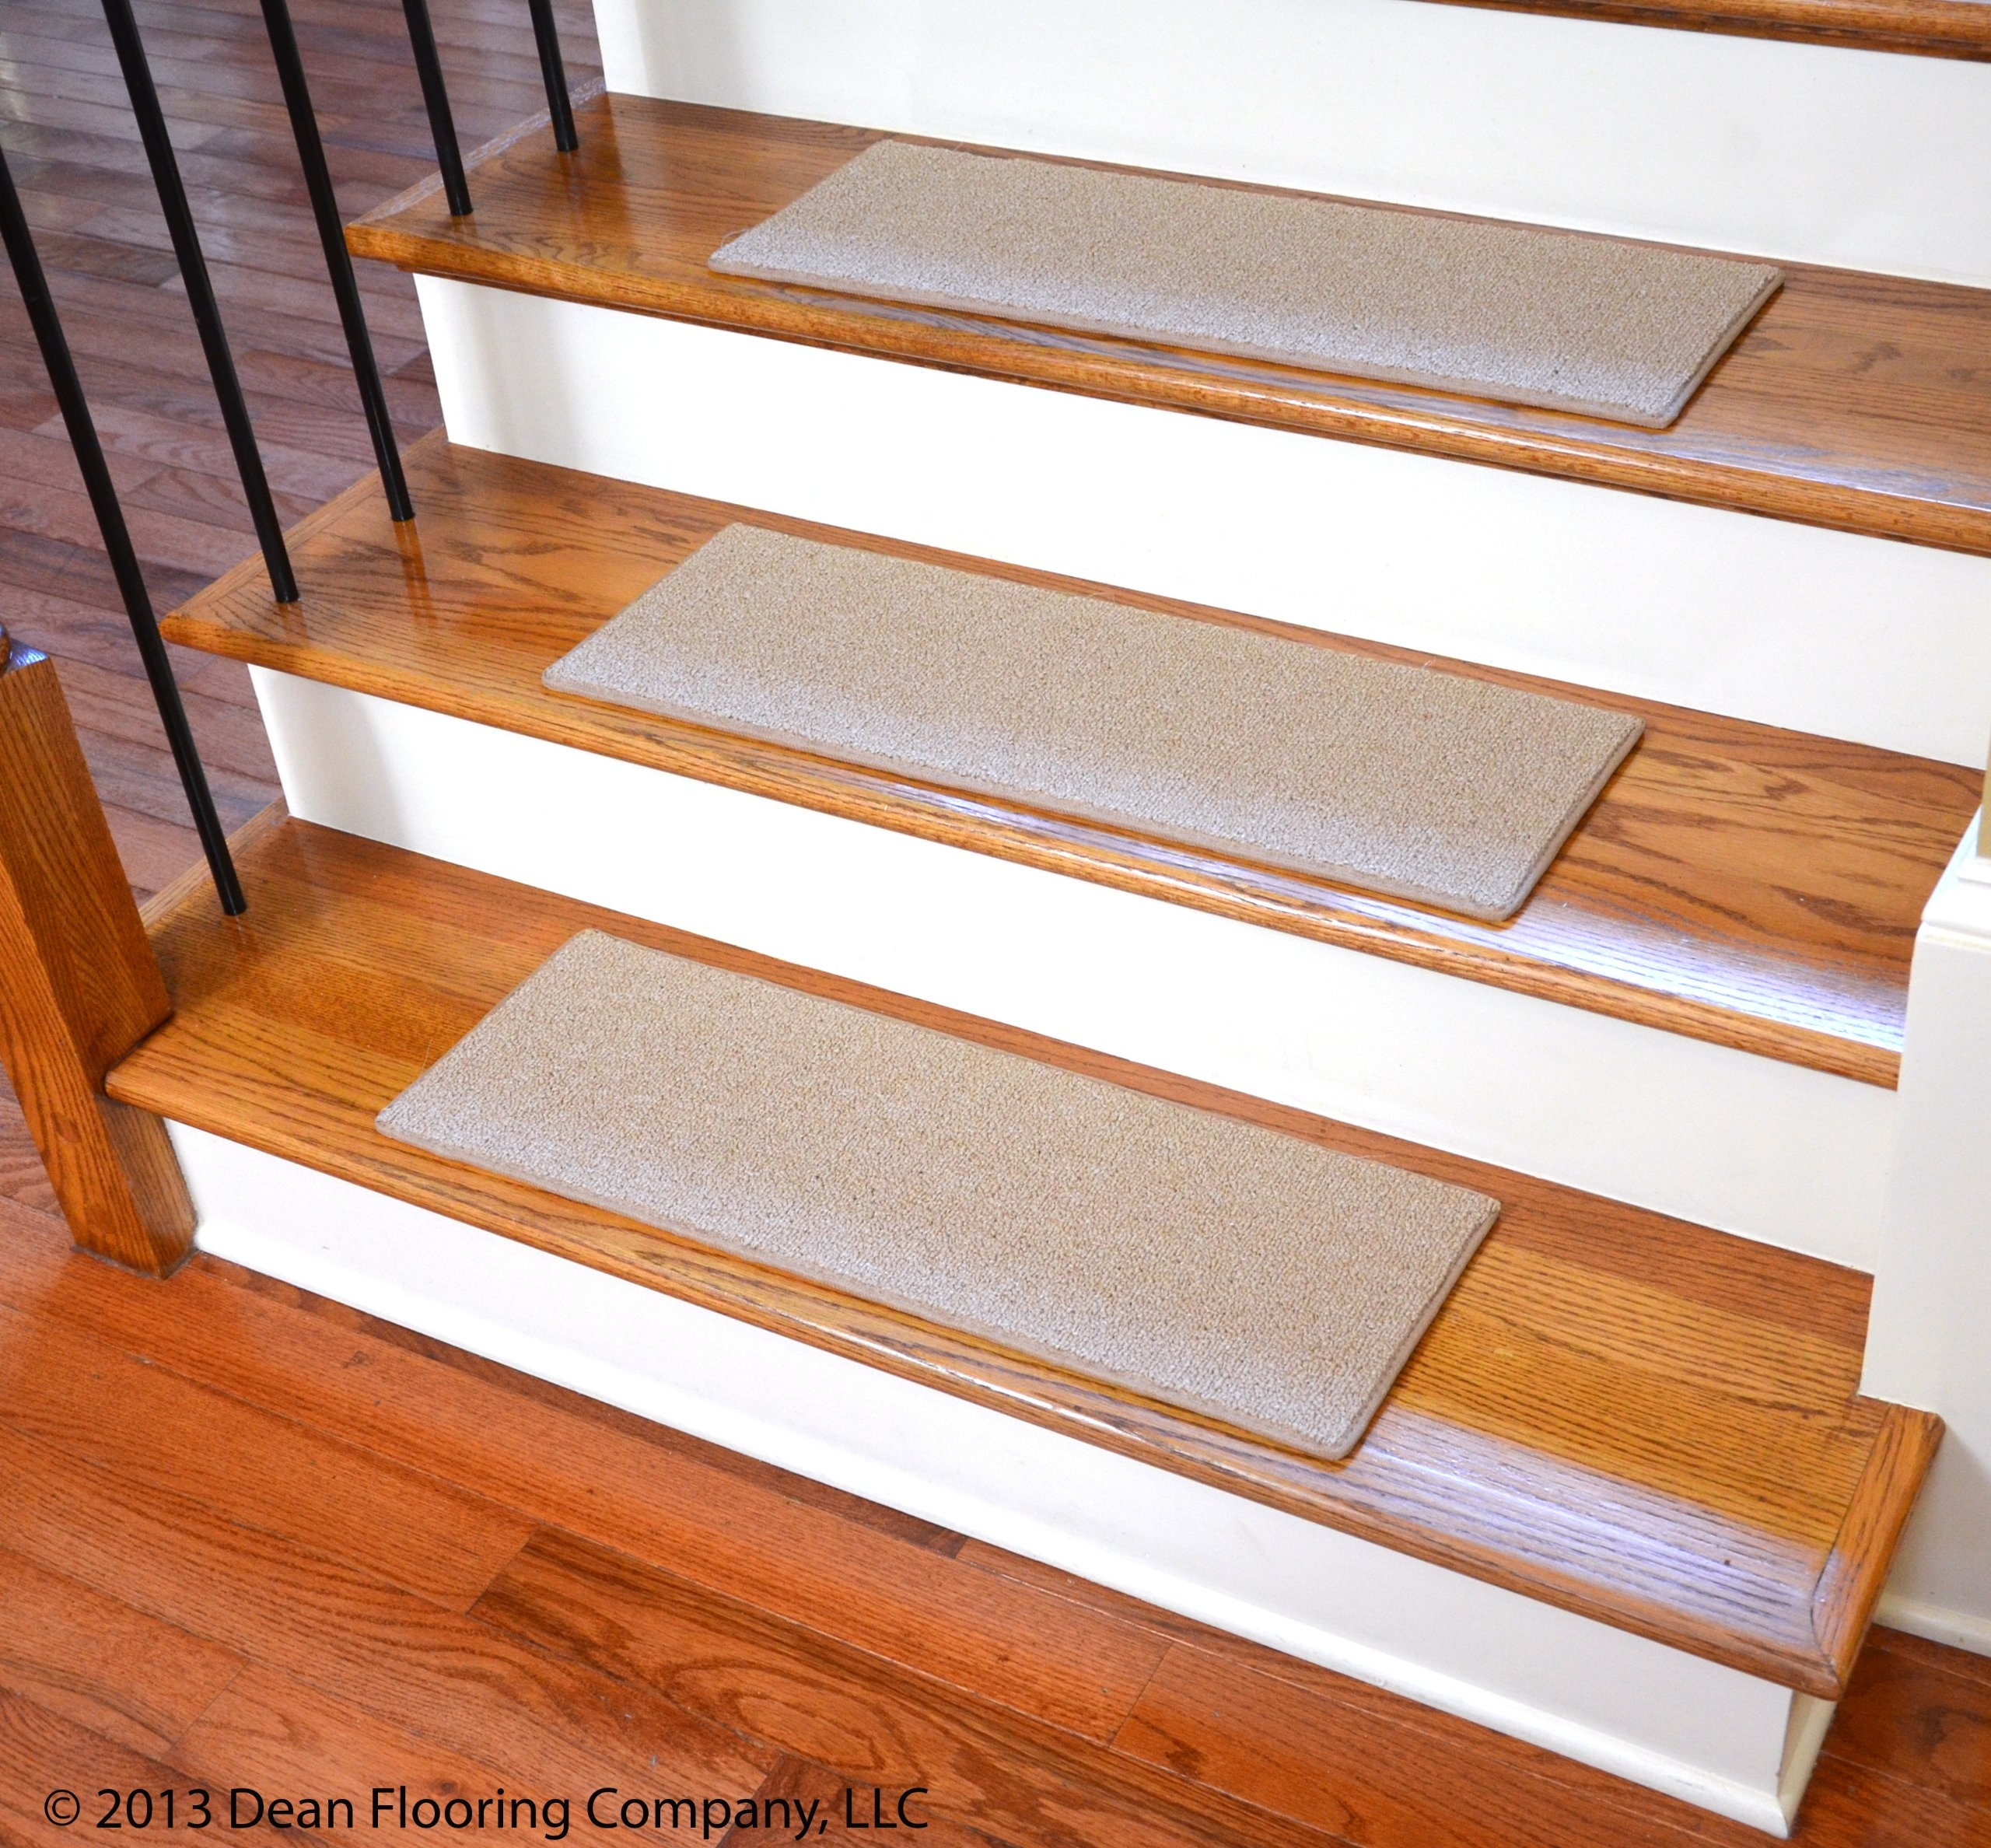 Exterior Interesting Stair Treads For Interior And Exterior Throughout Wooden Stair Grips (#6 of 20)